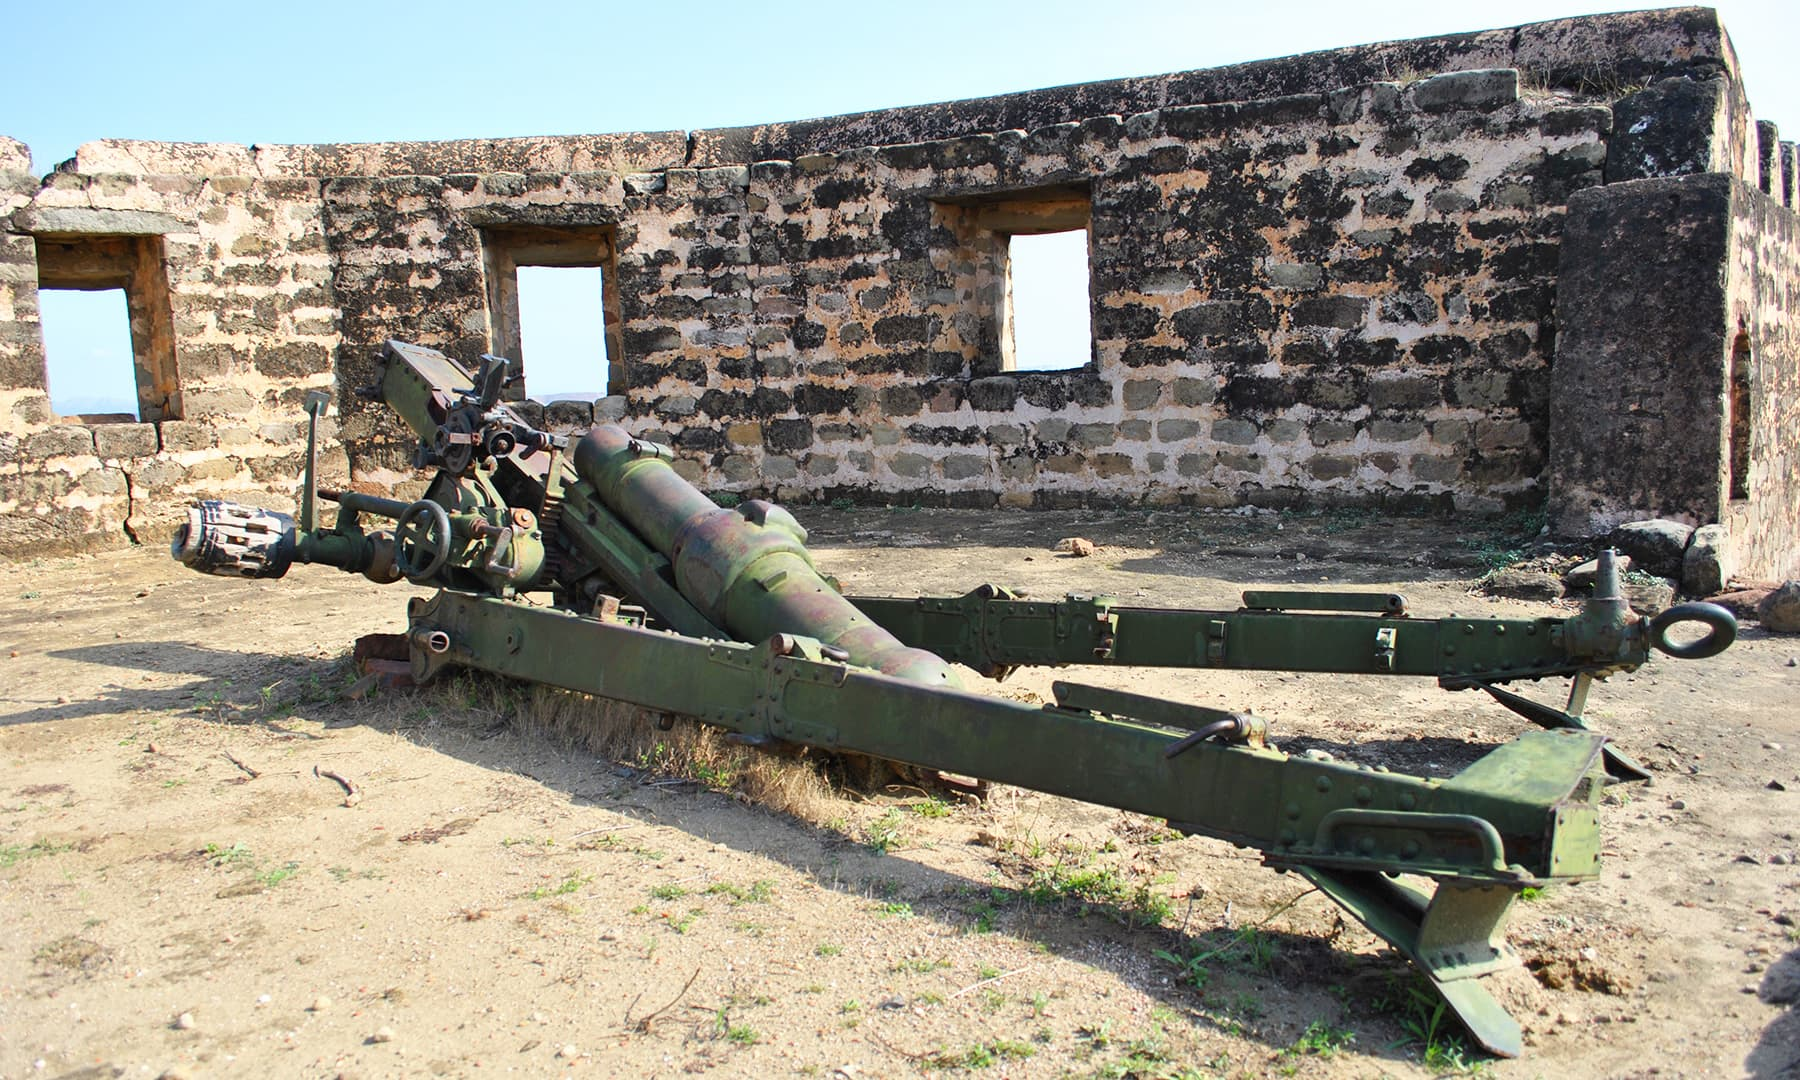 The Pakistan Army provided old model canons for the fort, but due to lack of care, they are now broken.